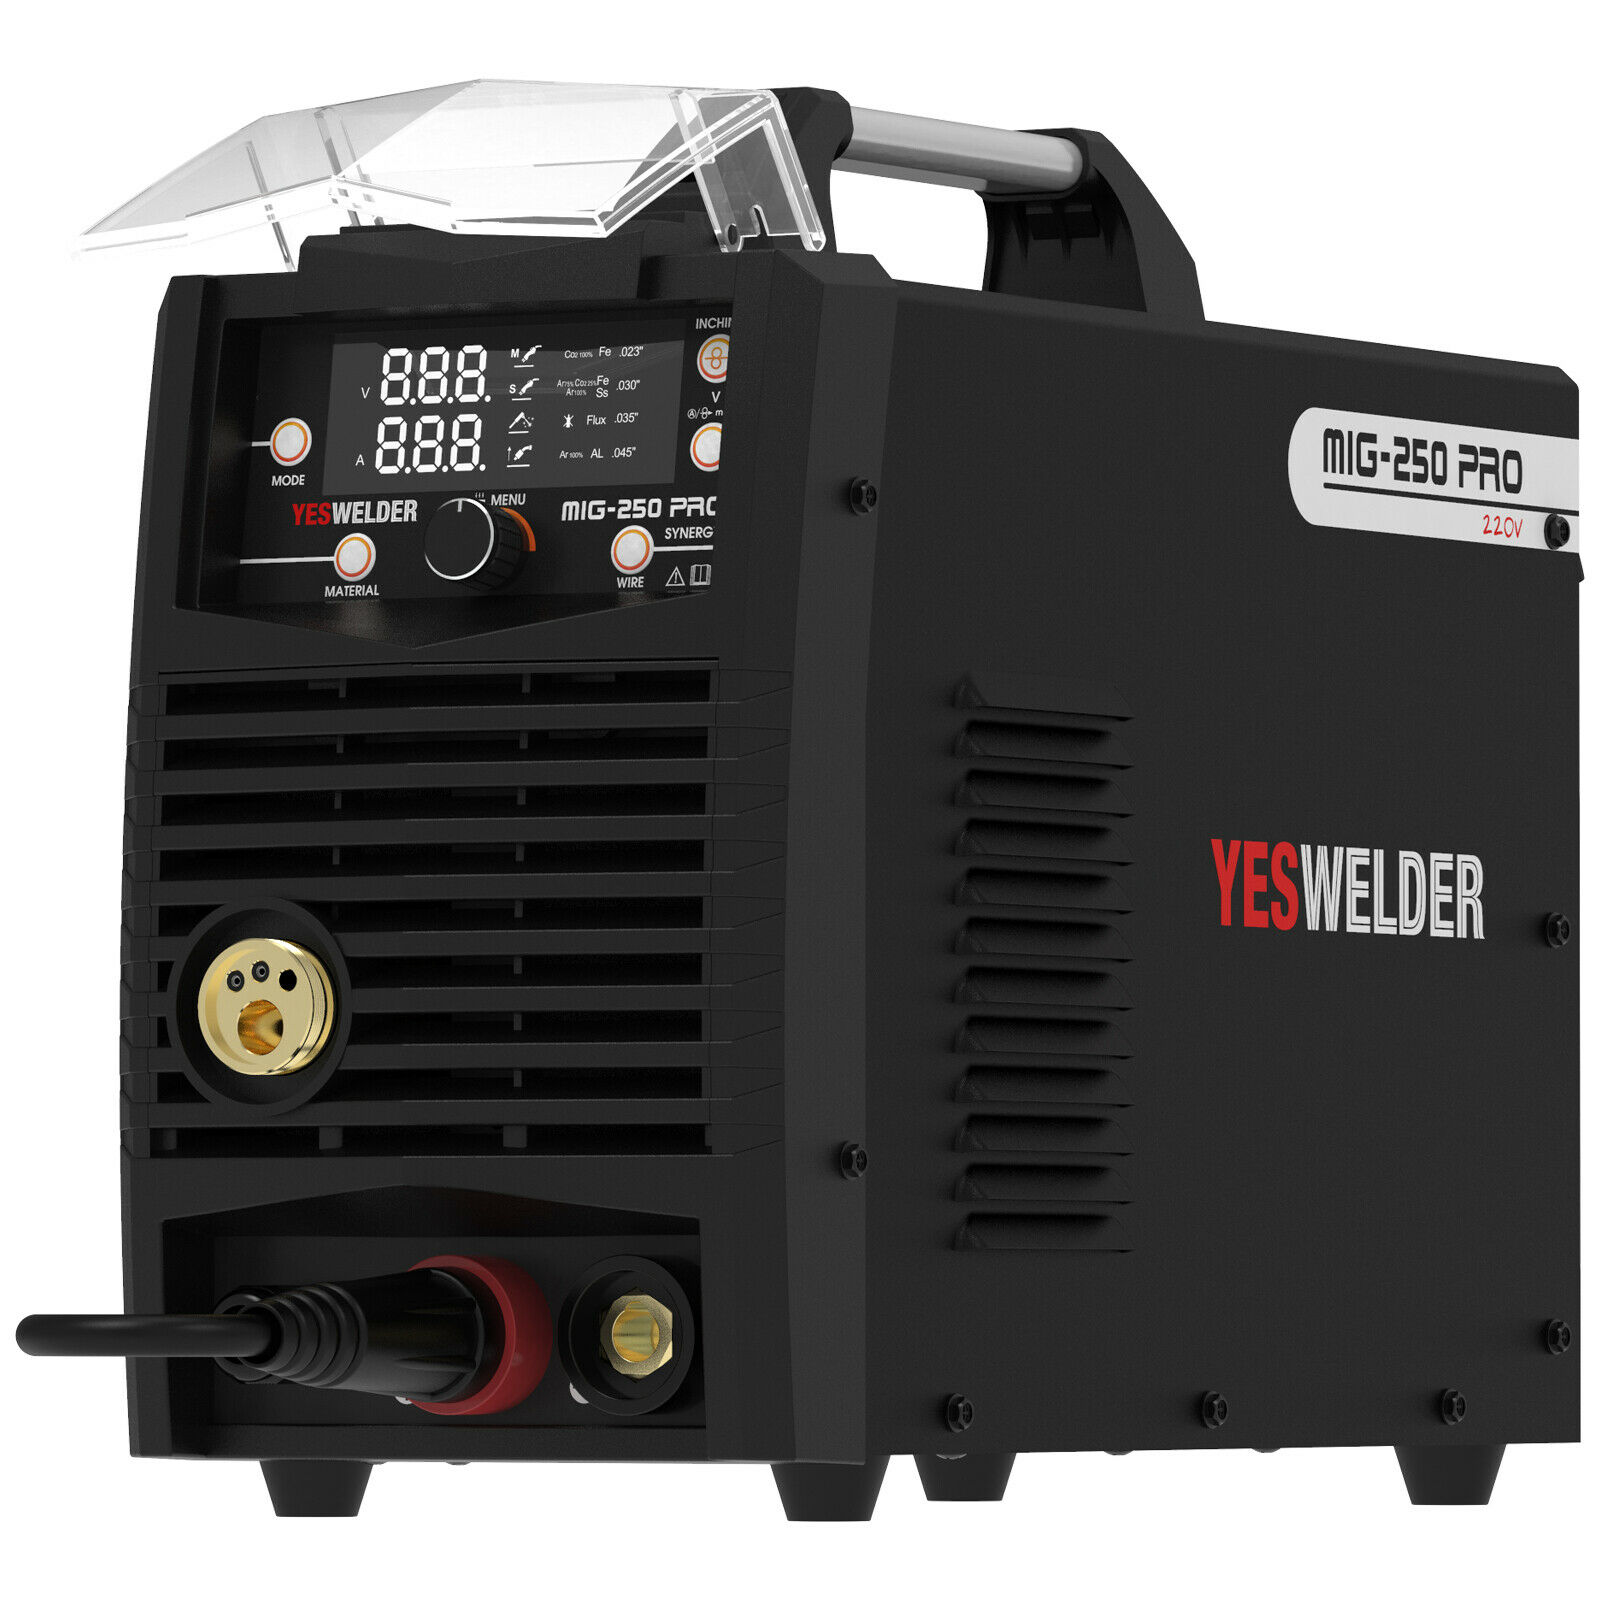 MIG-250 PRO Aluminum MIG Welder,250A 220V,Welding Machine MIG/Lift TIG/ARC 3 in1. Buy it now for 499.99